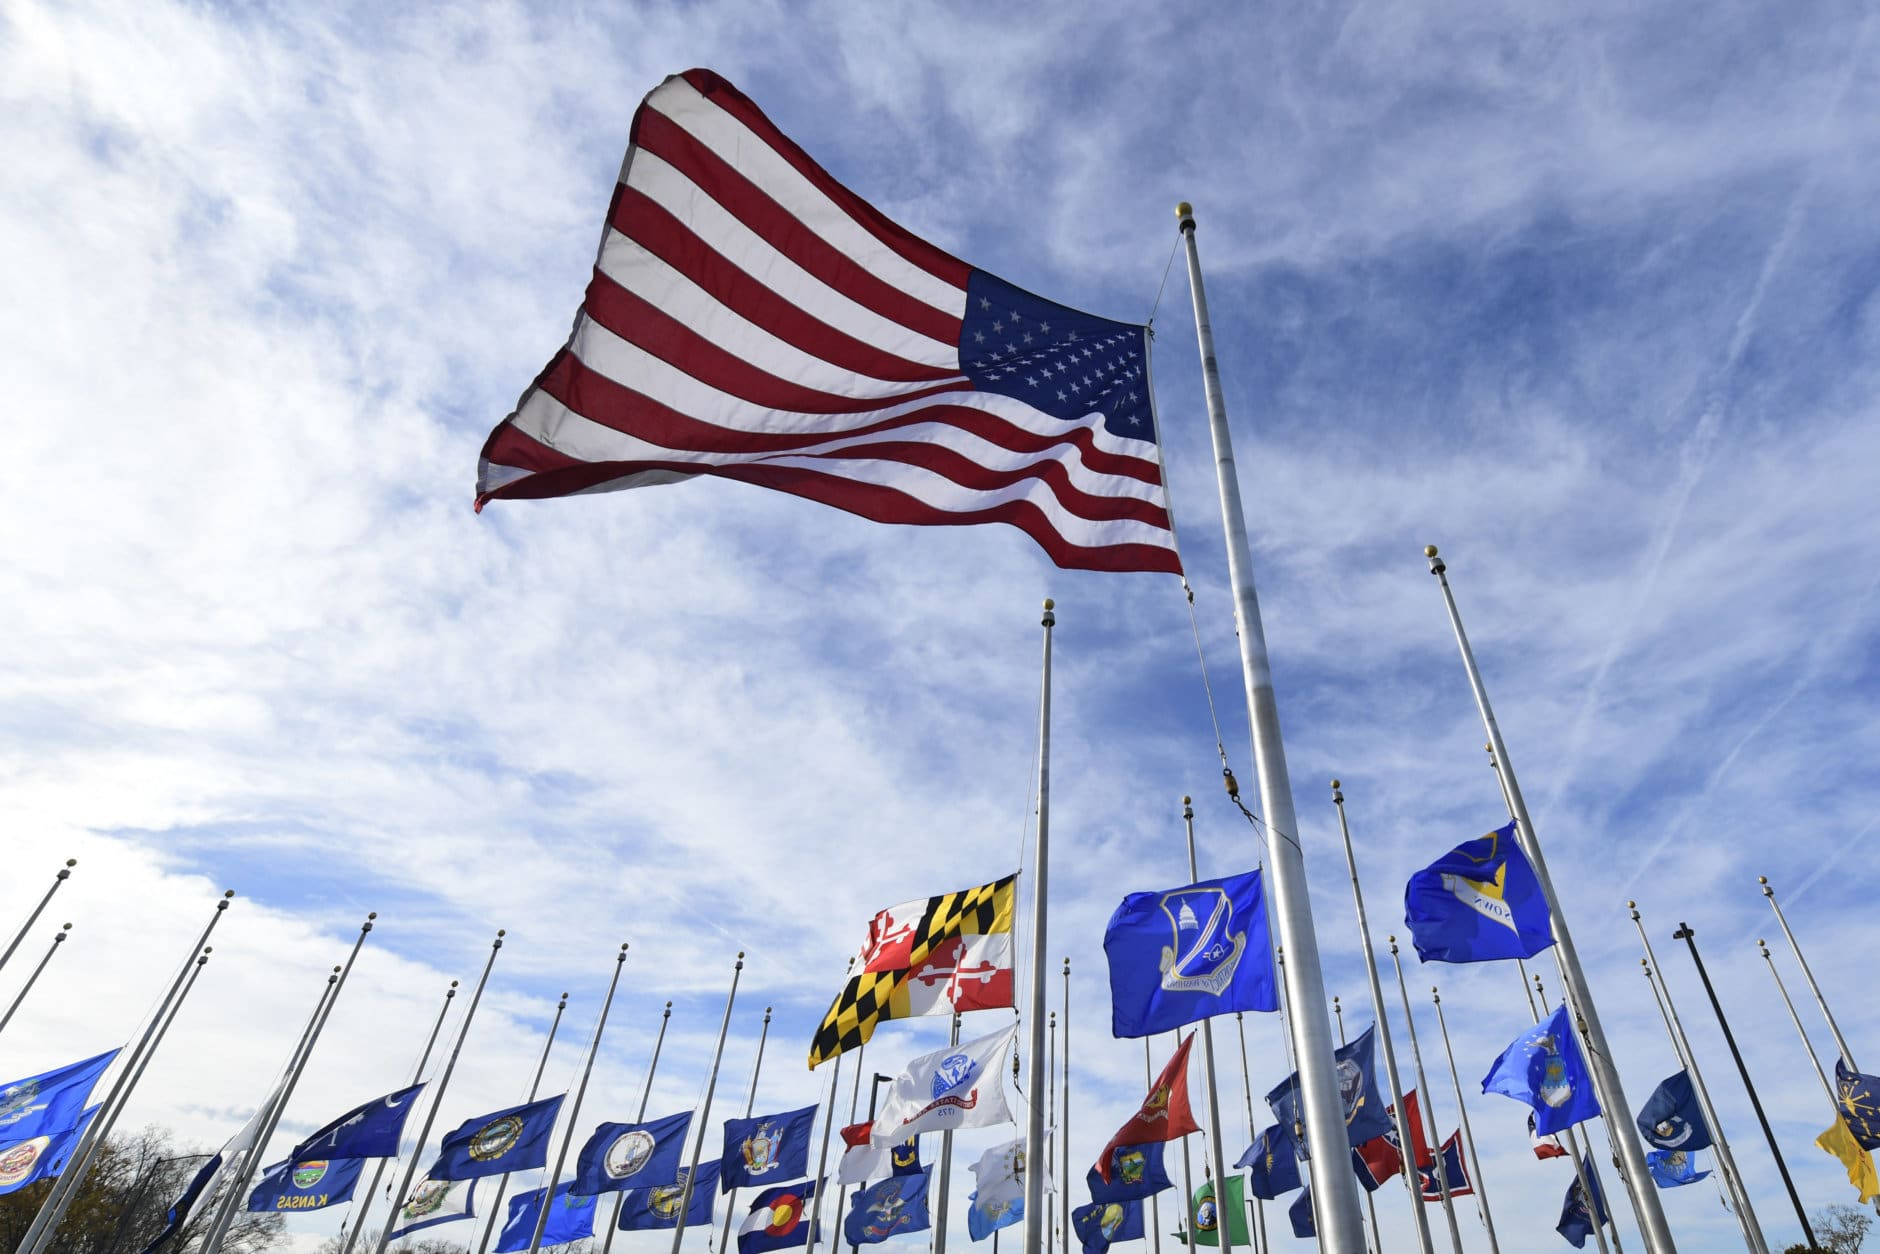 Flags fly at half-staff at Andrews Air Force Base in Md., Monday, Dec. 3, 2018, in honor of former President George H.W. Bush. An outpouring is anticipated in Washington this week during the state funeral for Bush, who died late Friday at his home in Houston. He was 94. (AP Photo/Susan Walsh)